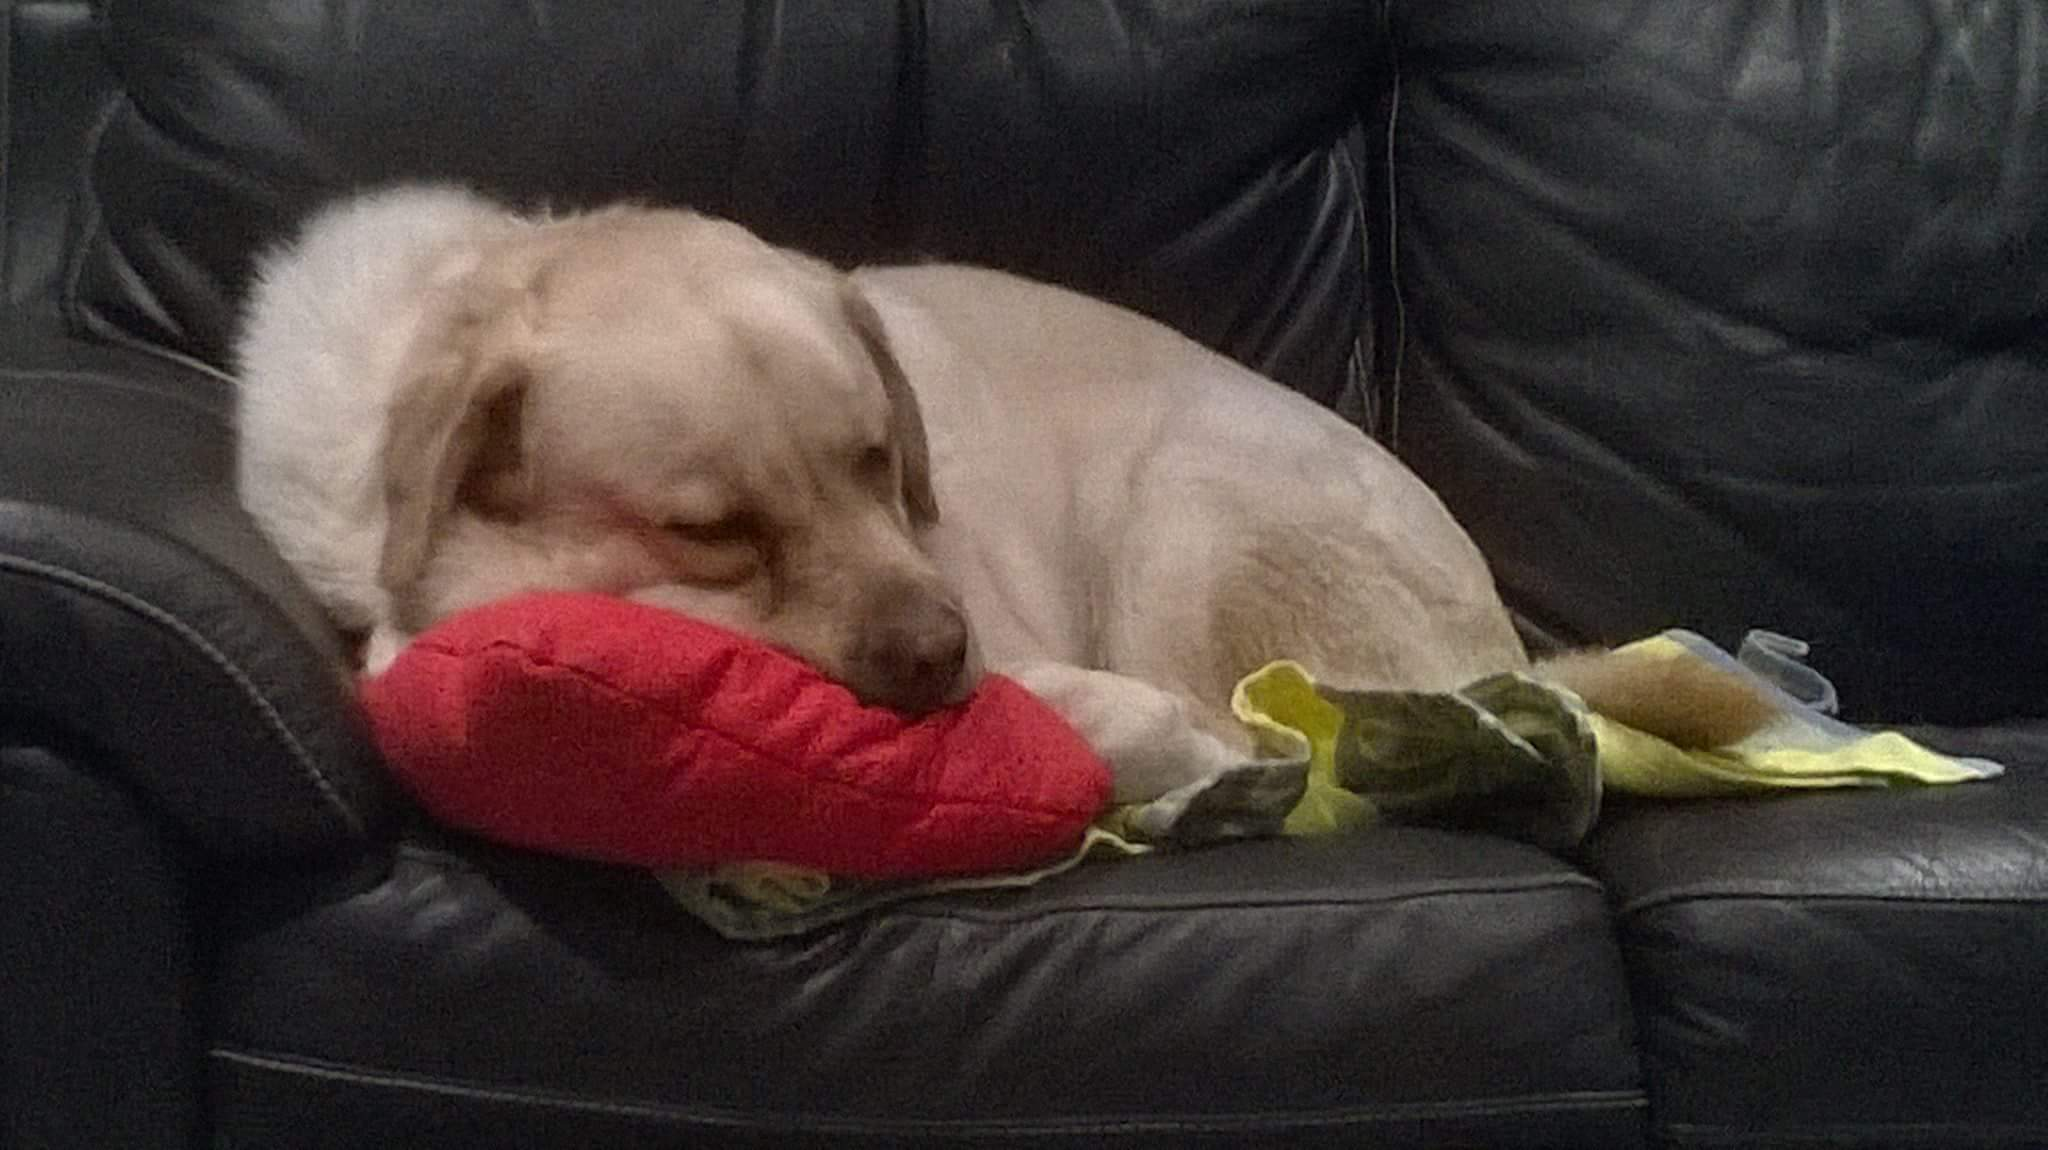 Reference] Paddington, New South Wales (One large, friendly Labrador